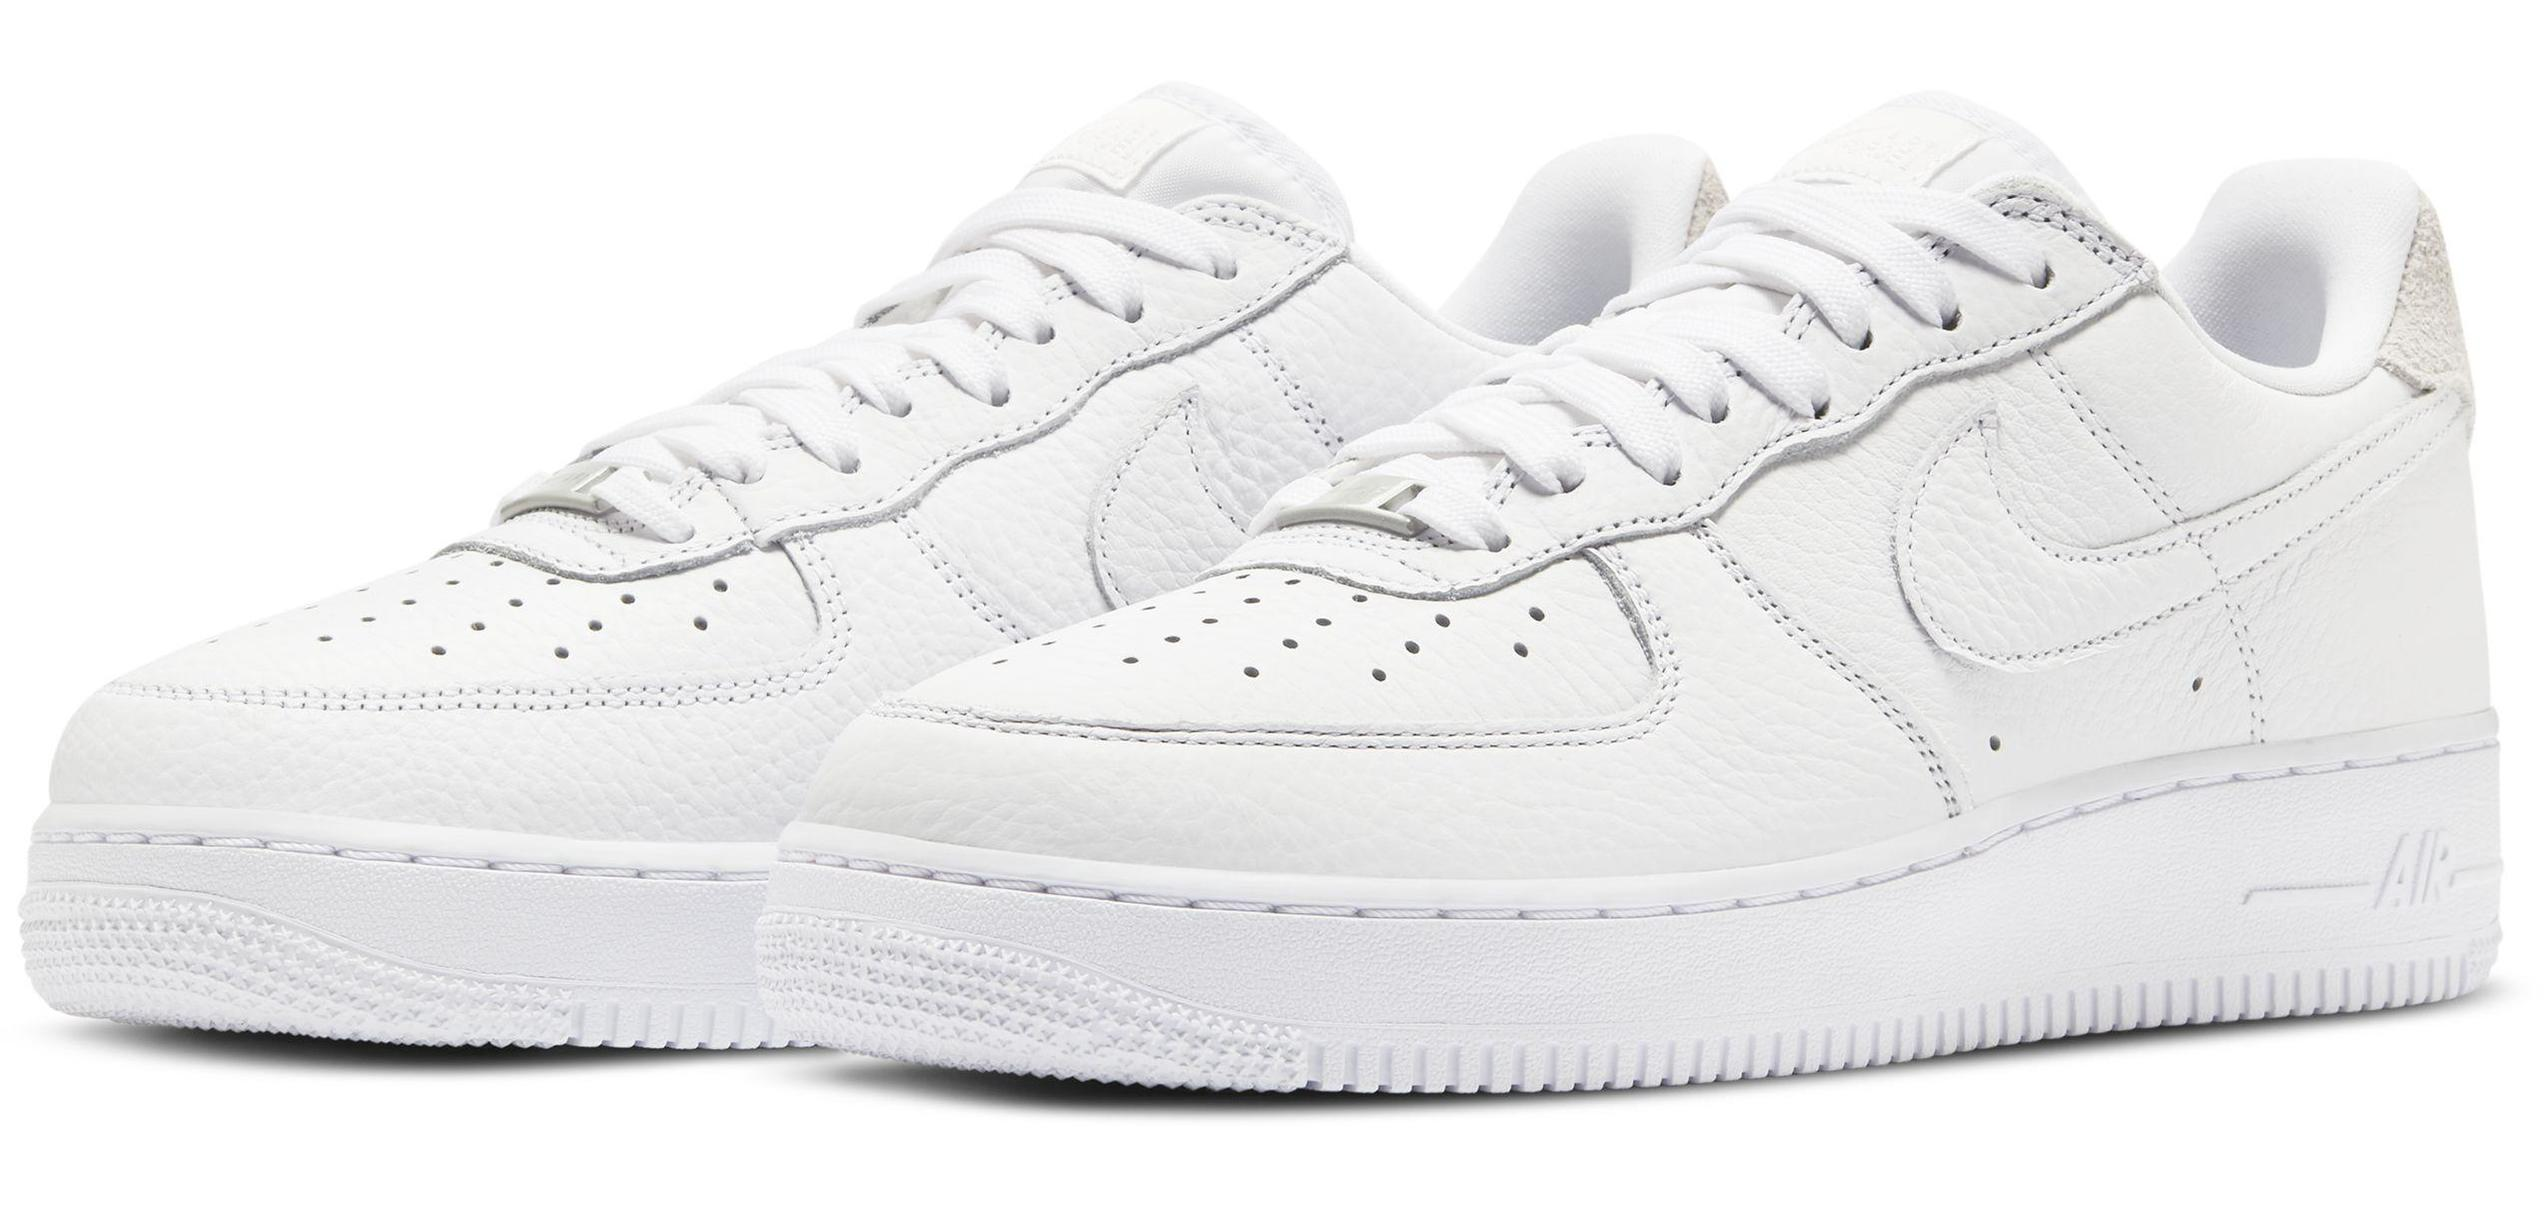 Nike Air Force 1 '07 Craft White/Summit White/Vast Grey/White